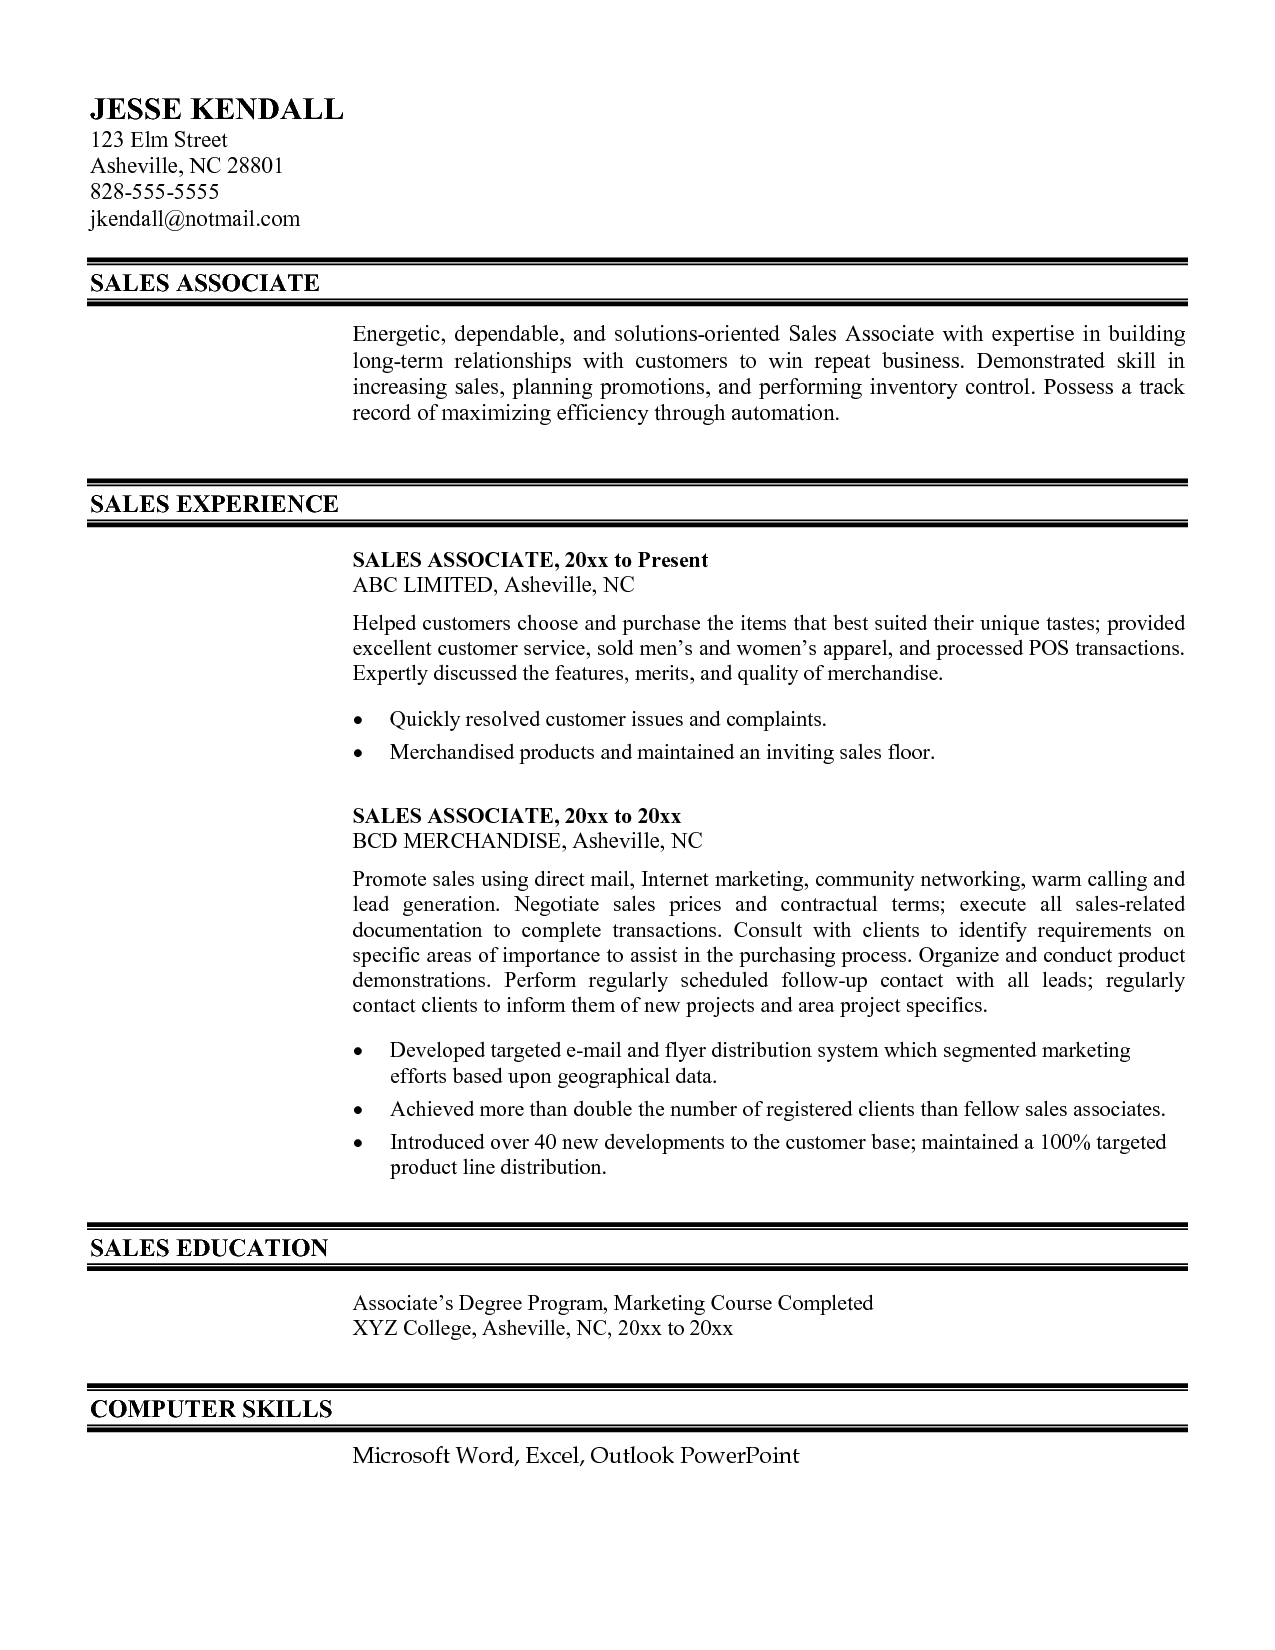 sample resume for sales associate